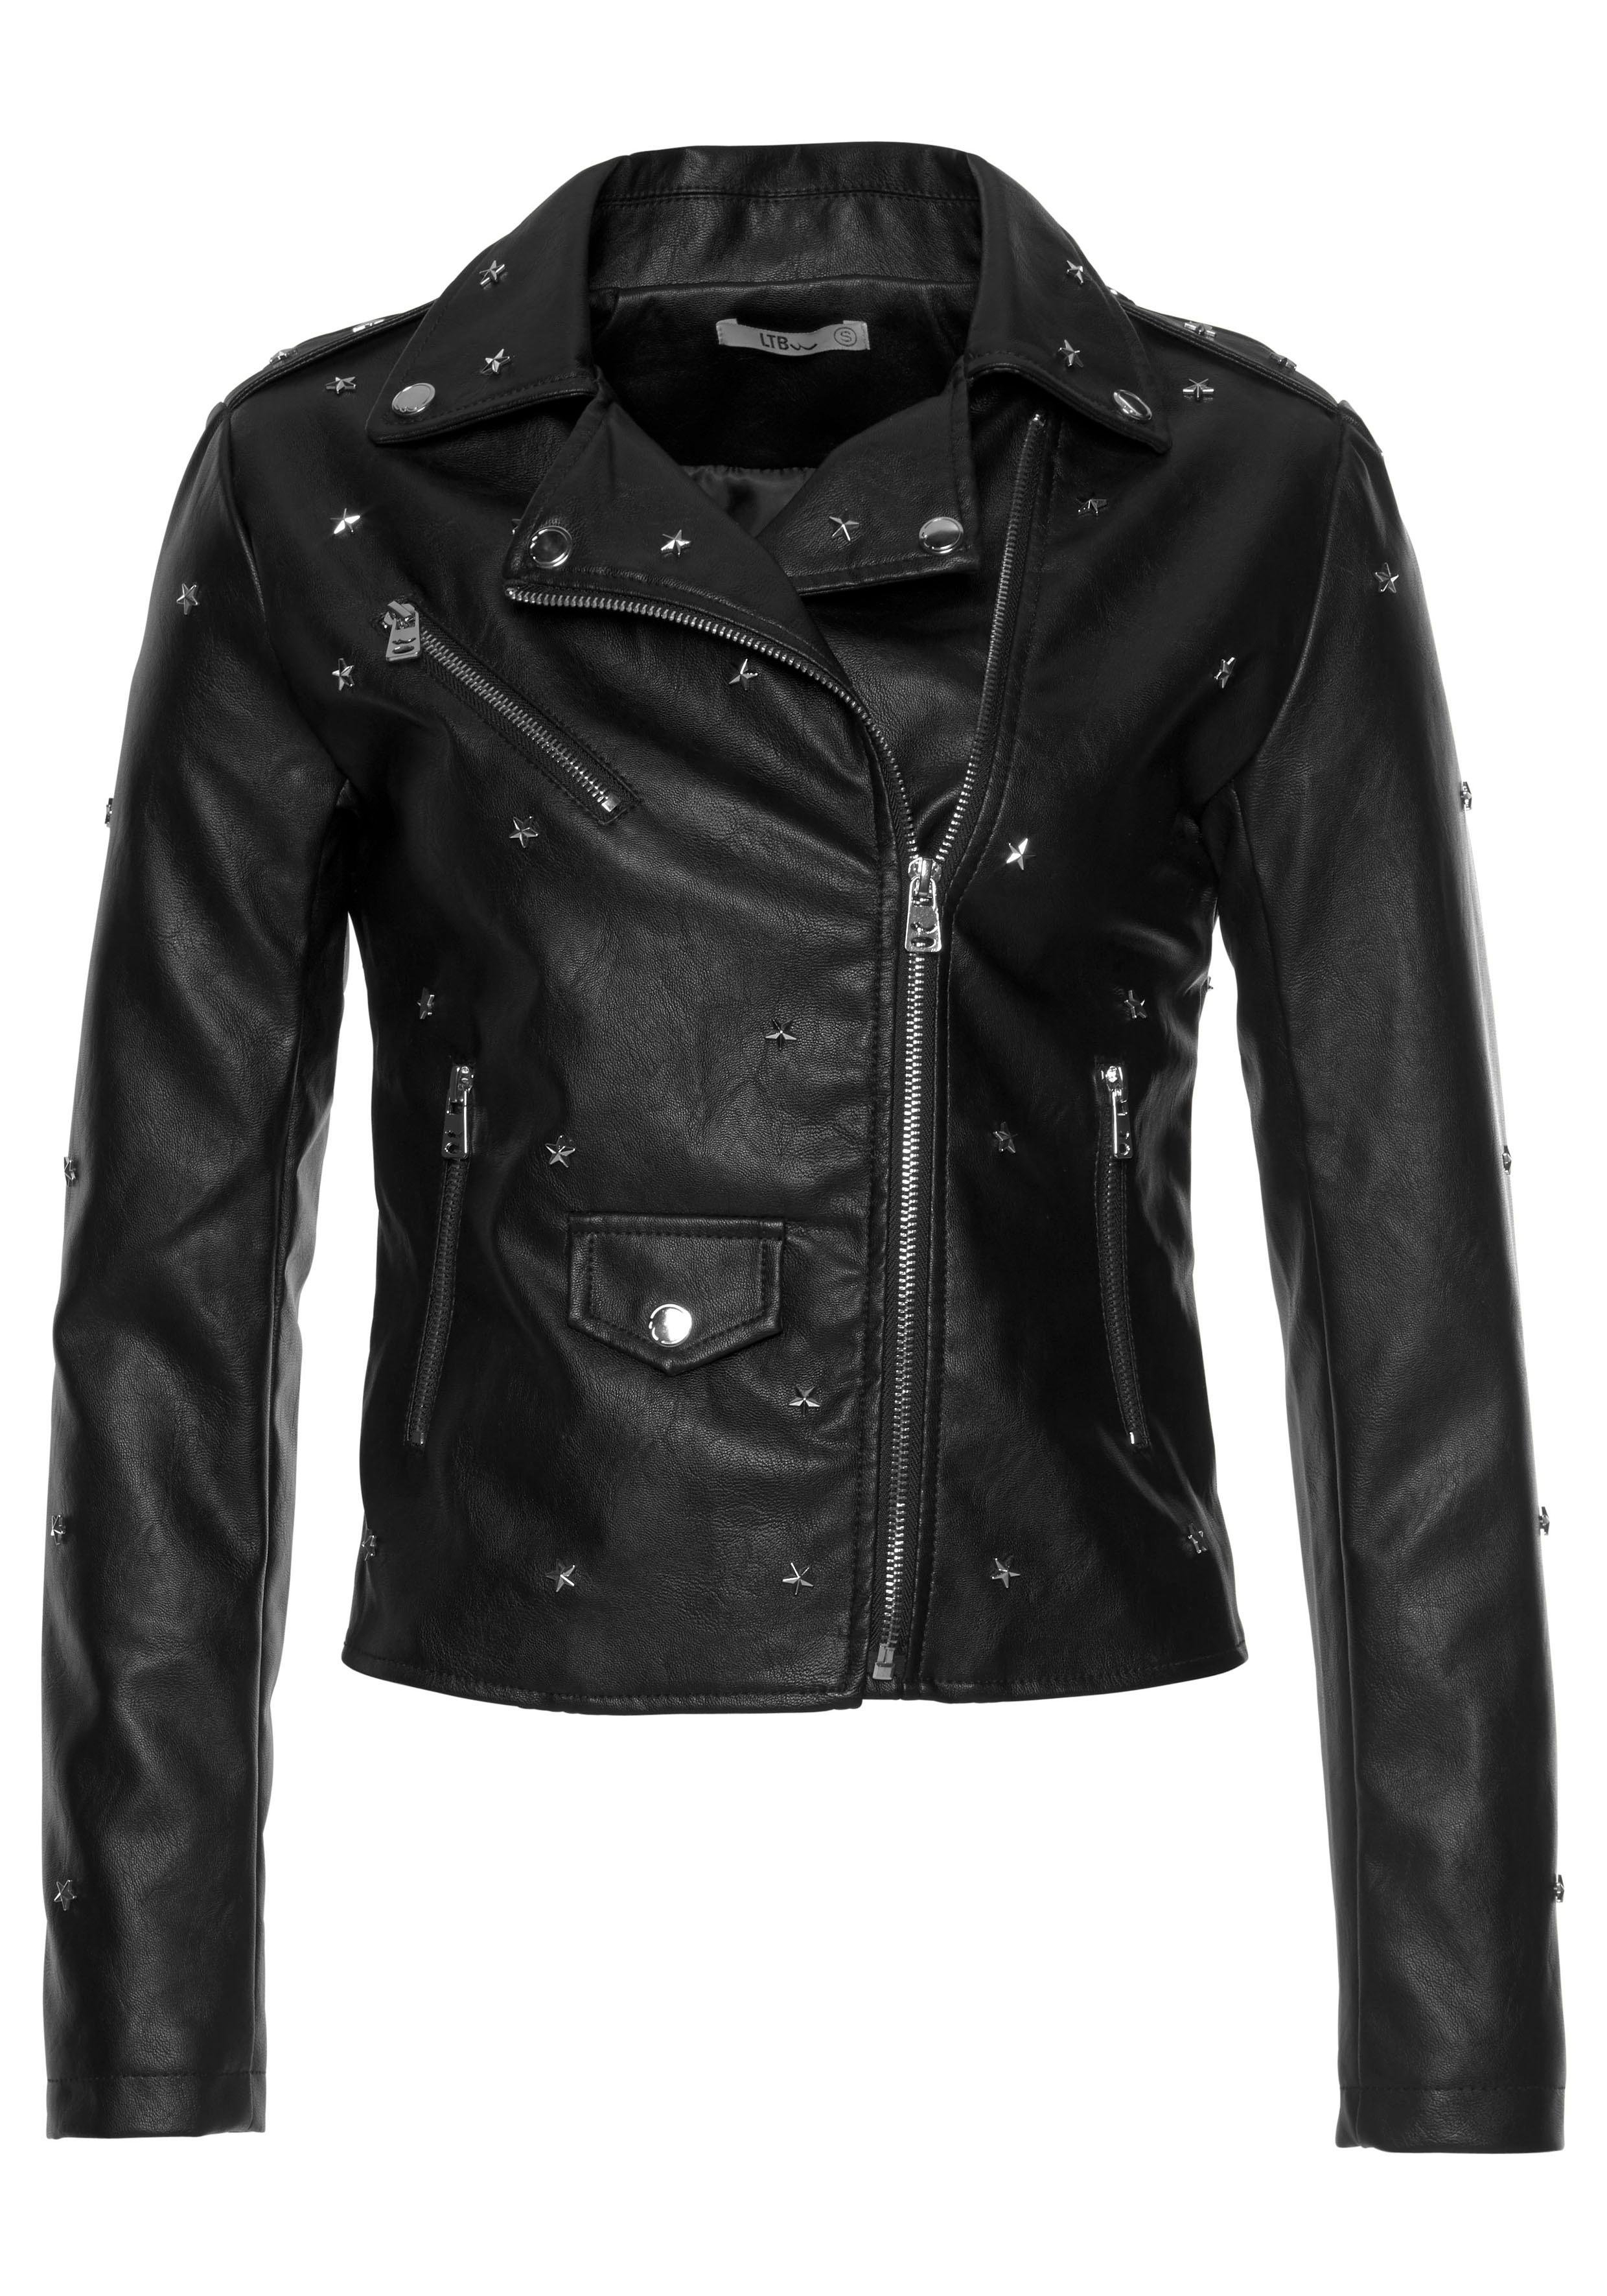 De Shop In Ltb Bikerjackopaya Online q35RjLc4AS